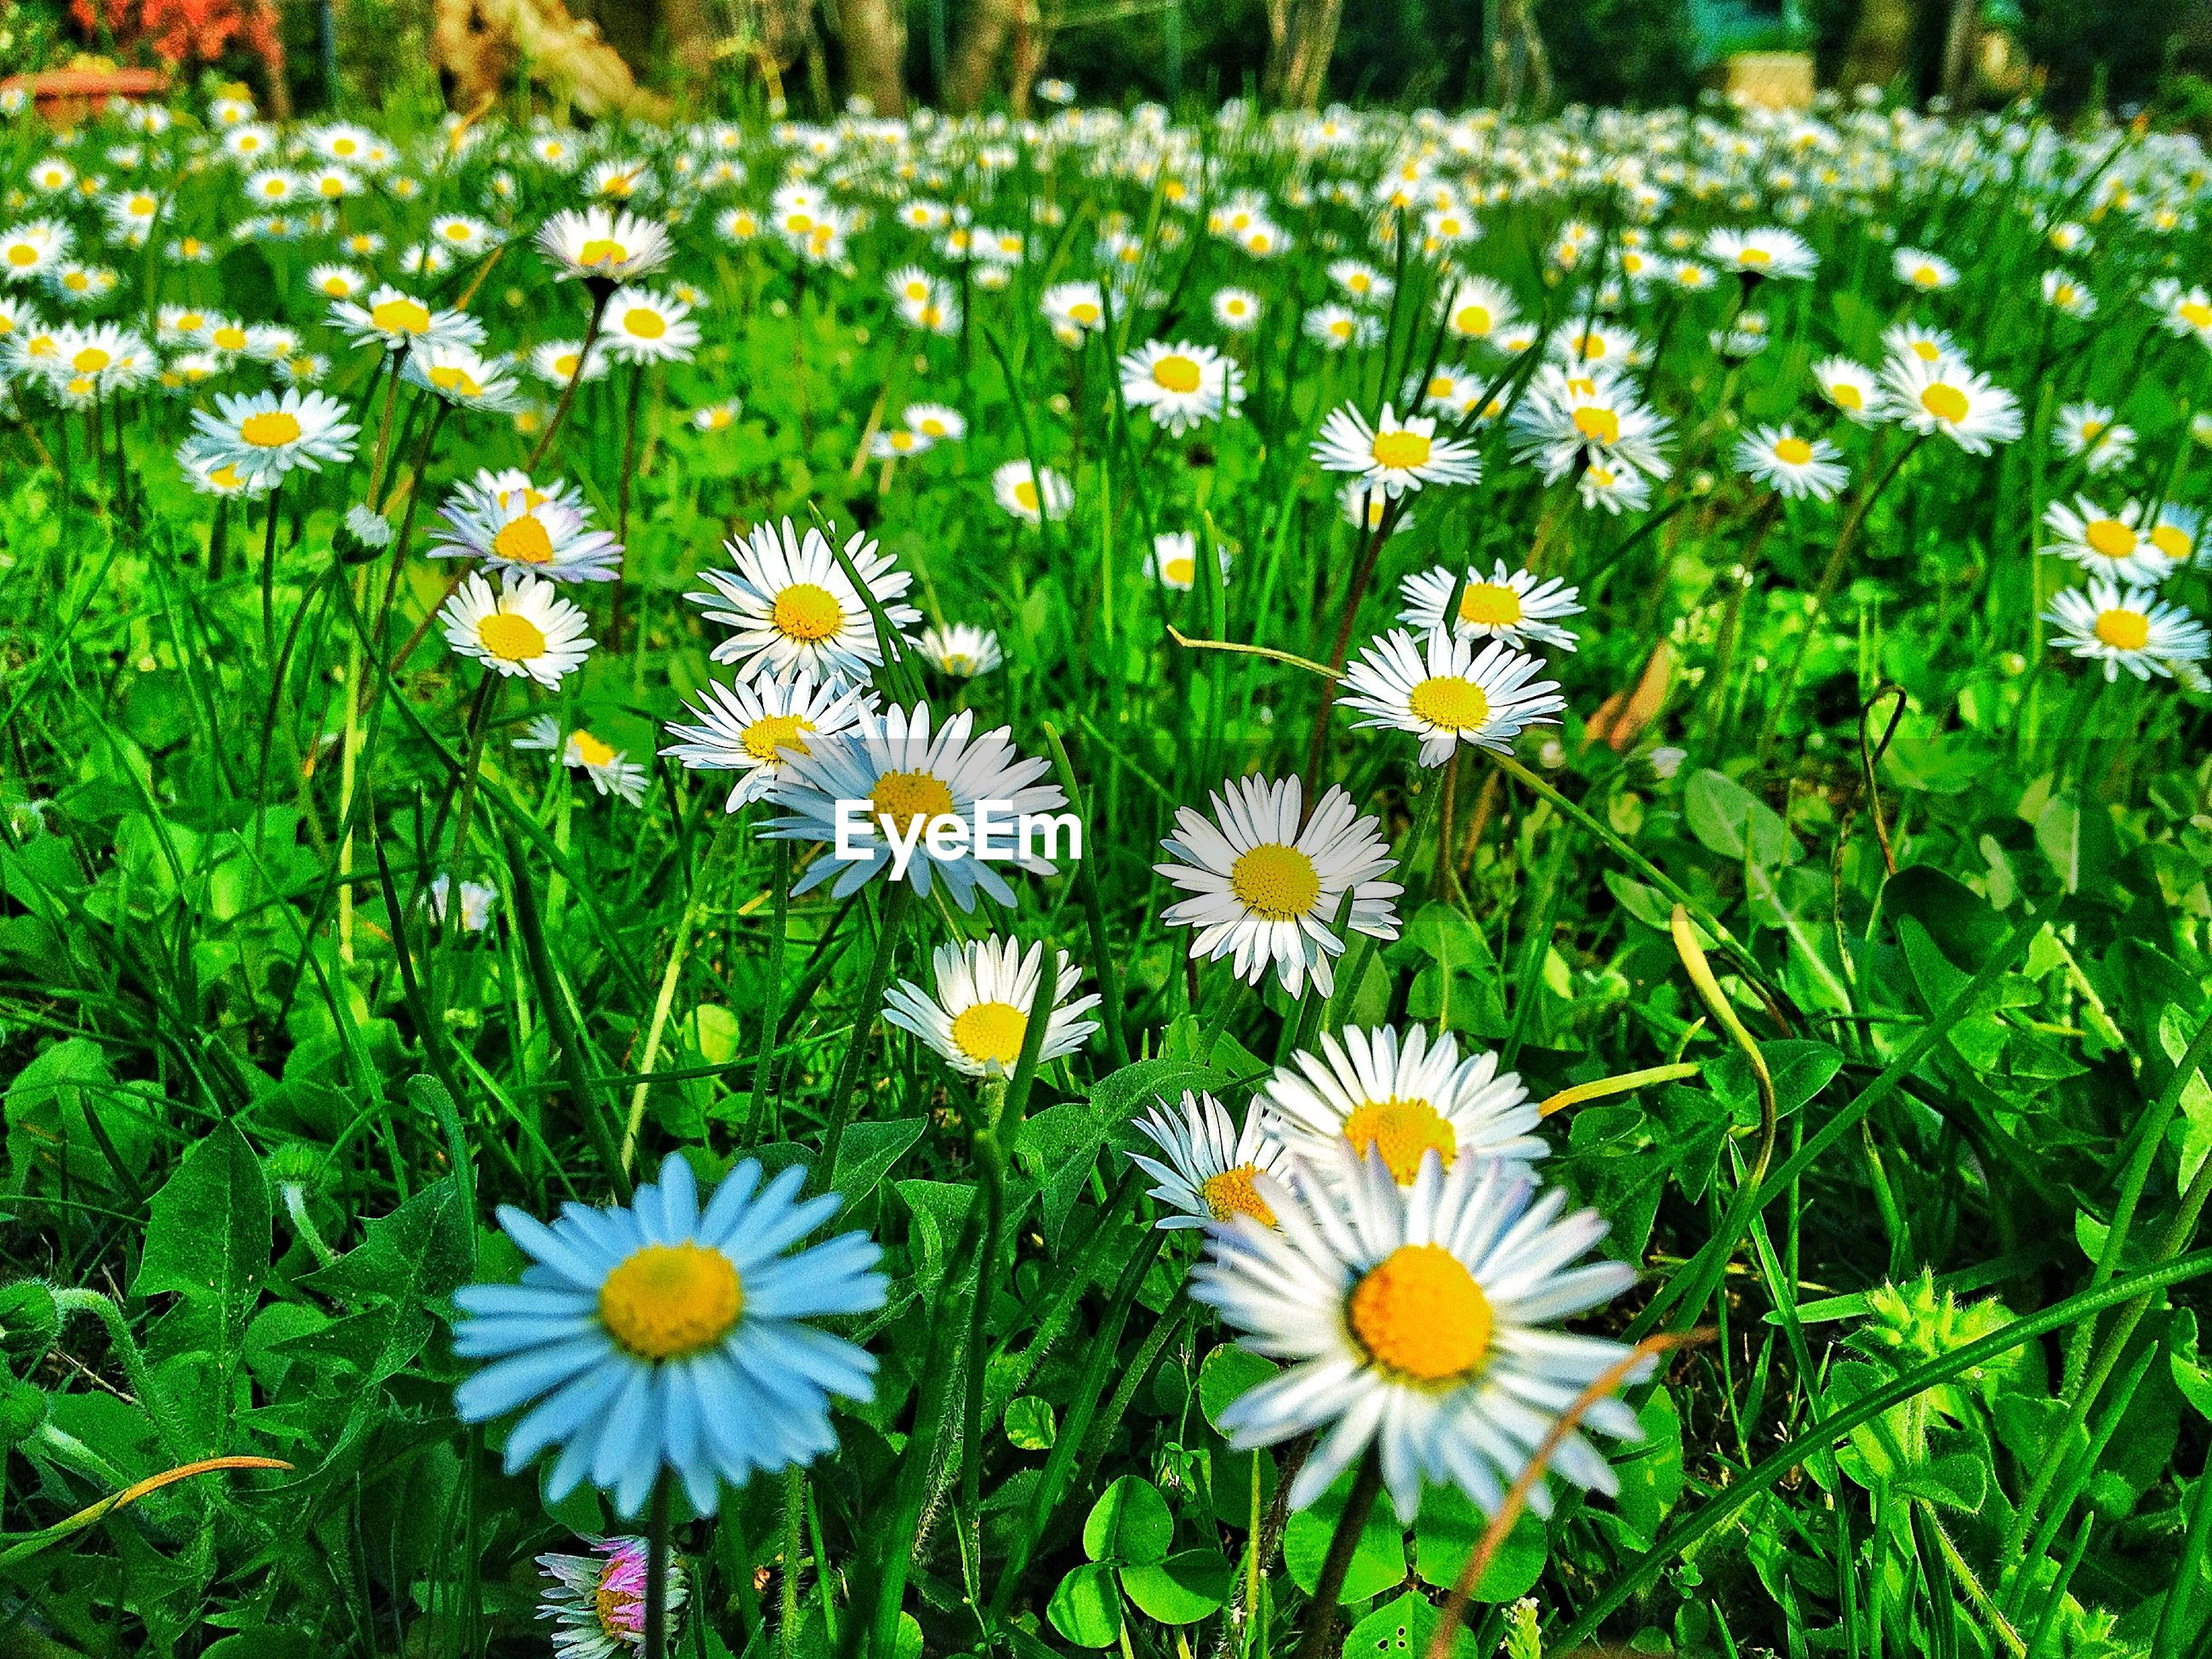 Close-up of daises blooming on field